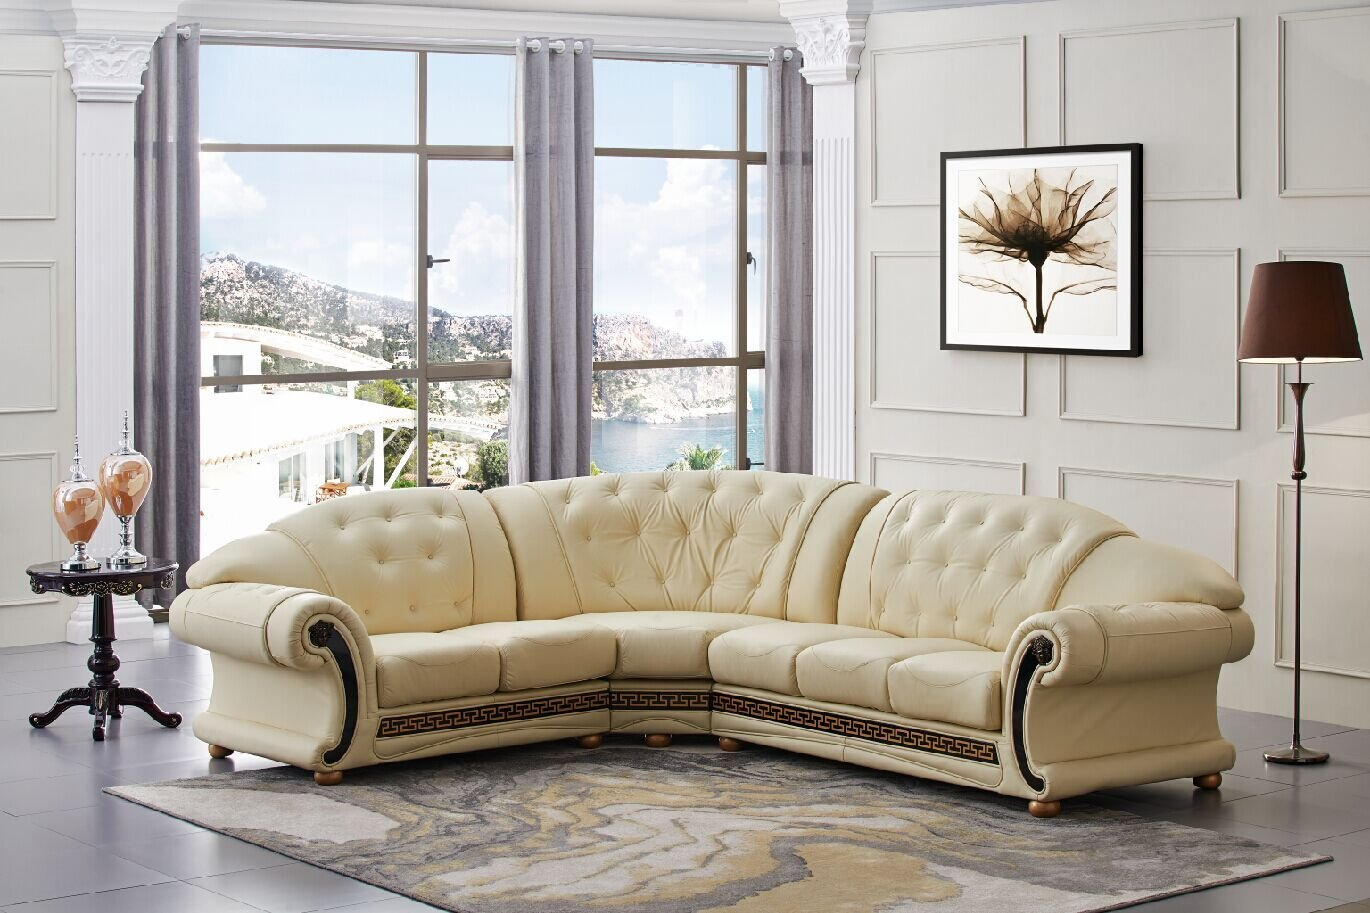 Amazon Versace Beige Leather Sectional Sofa in Traditional